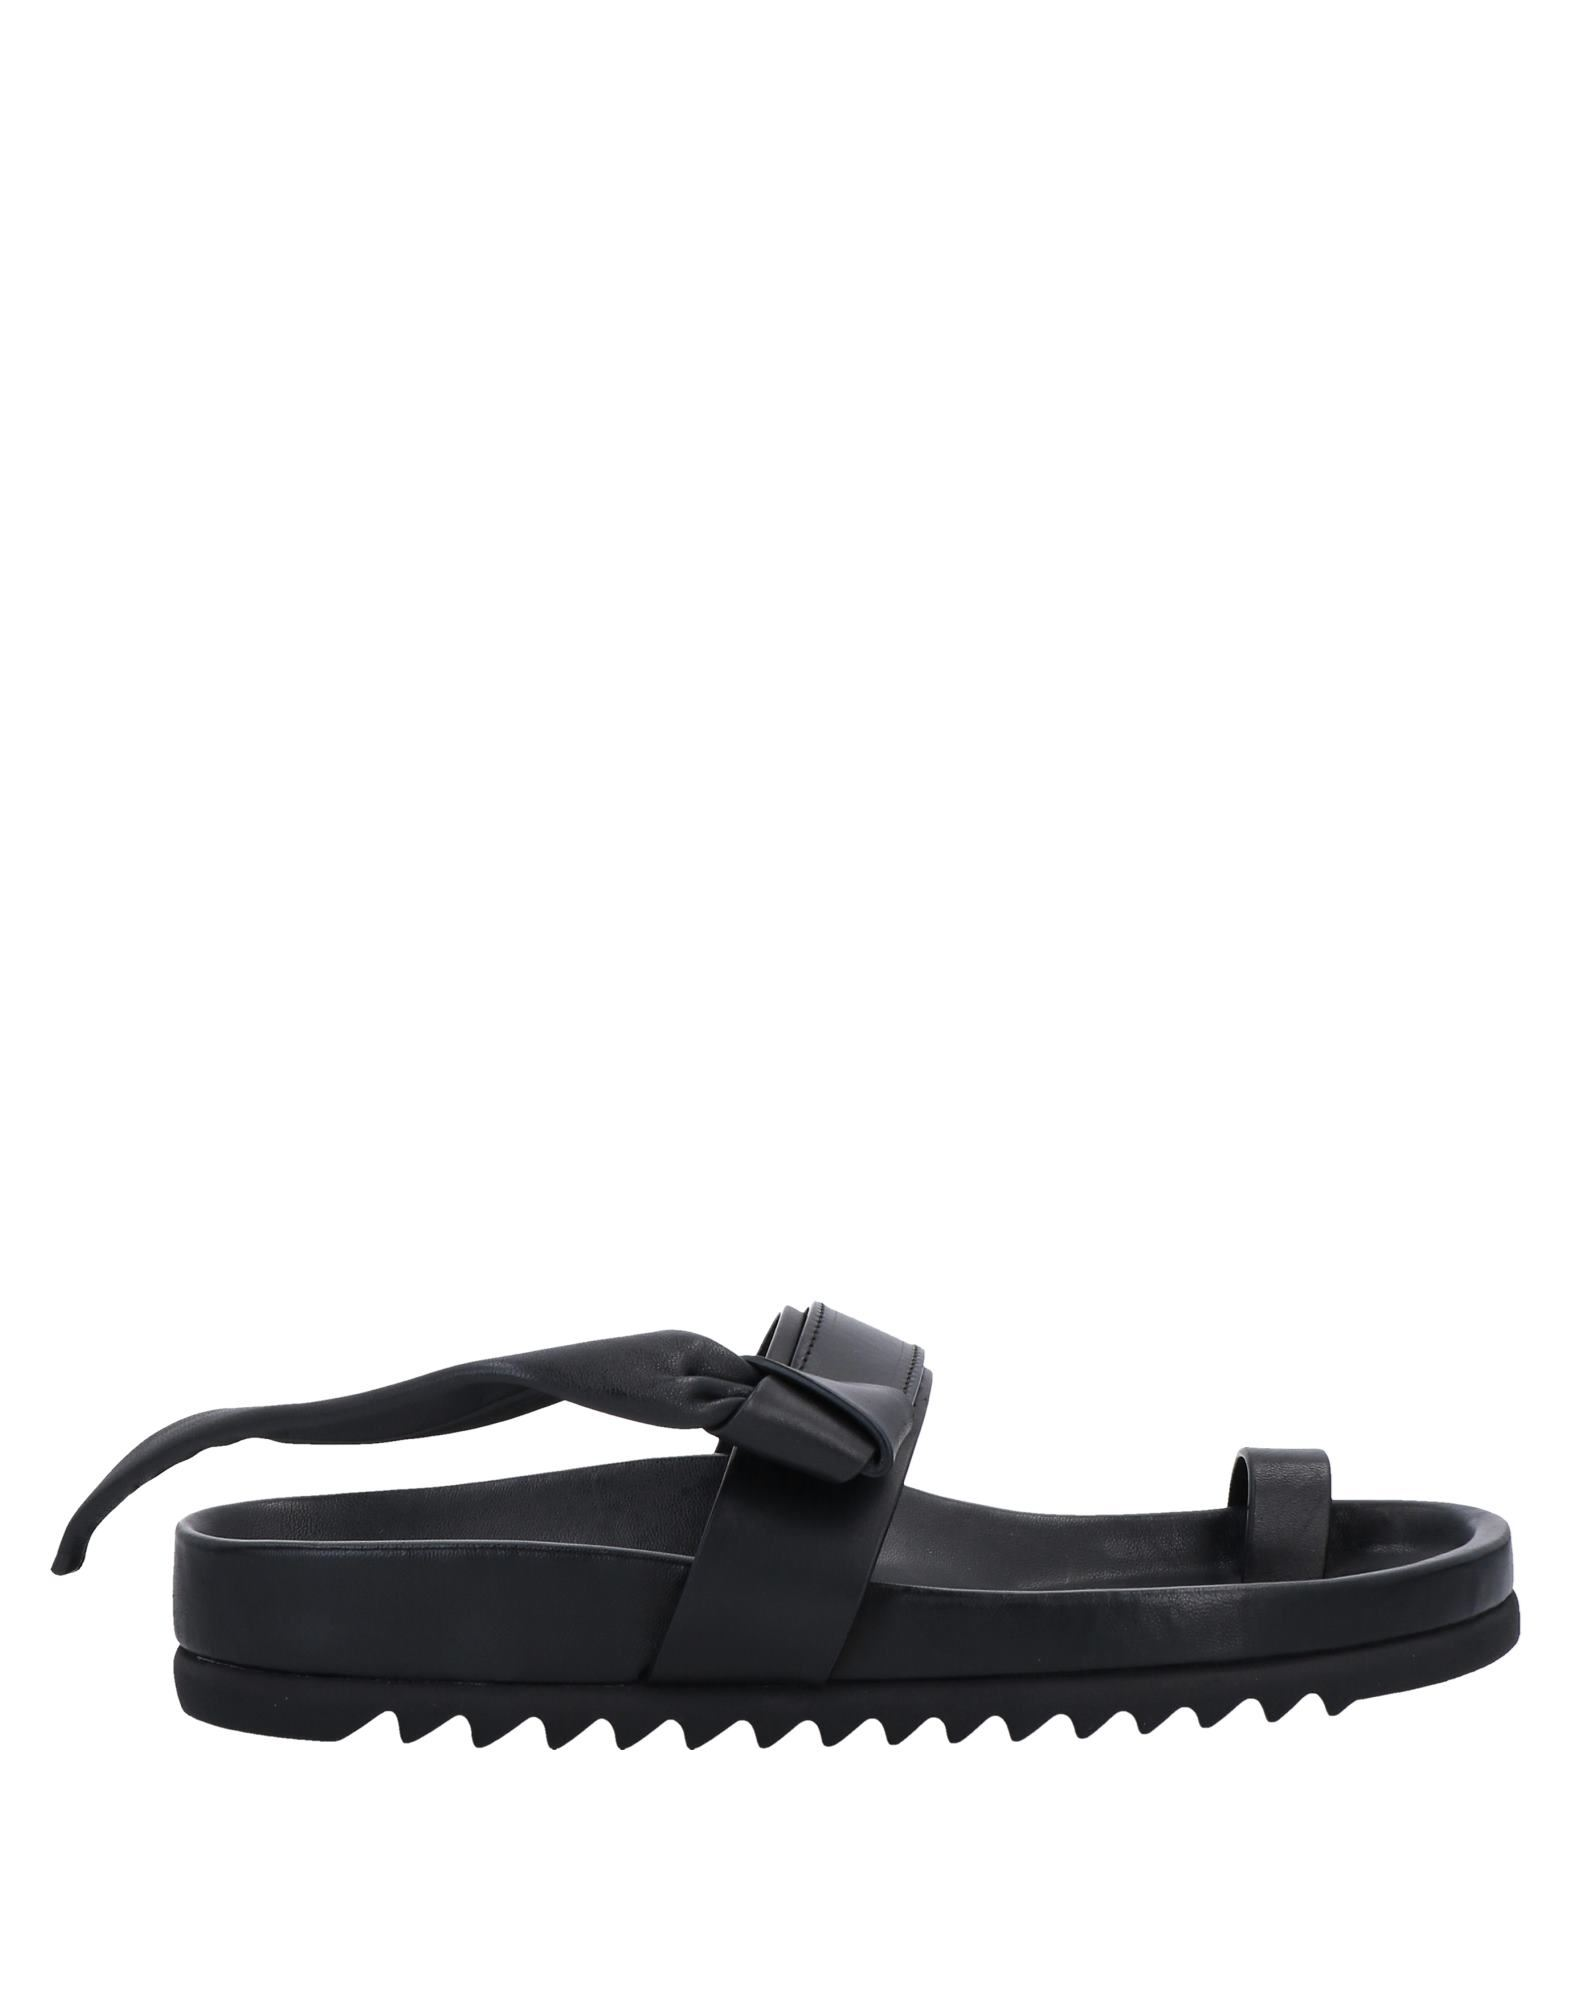 RICK OWENS Toe strap sandals. leather, no appliqués, solid color, velcro closure, round toeline, flat, leather lining, rubber sole, contains non-textile parts of animal origin. Soft Leather